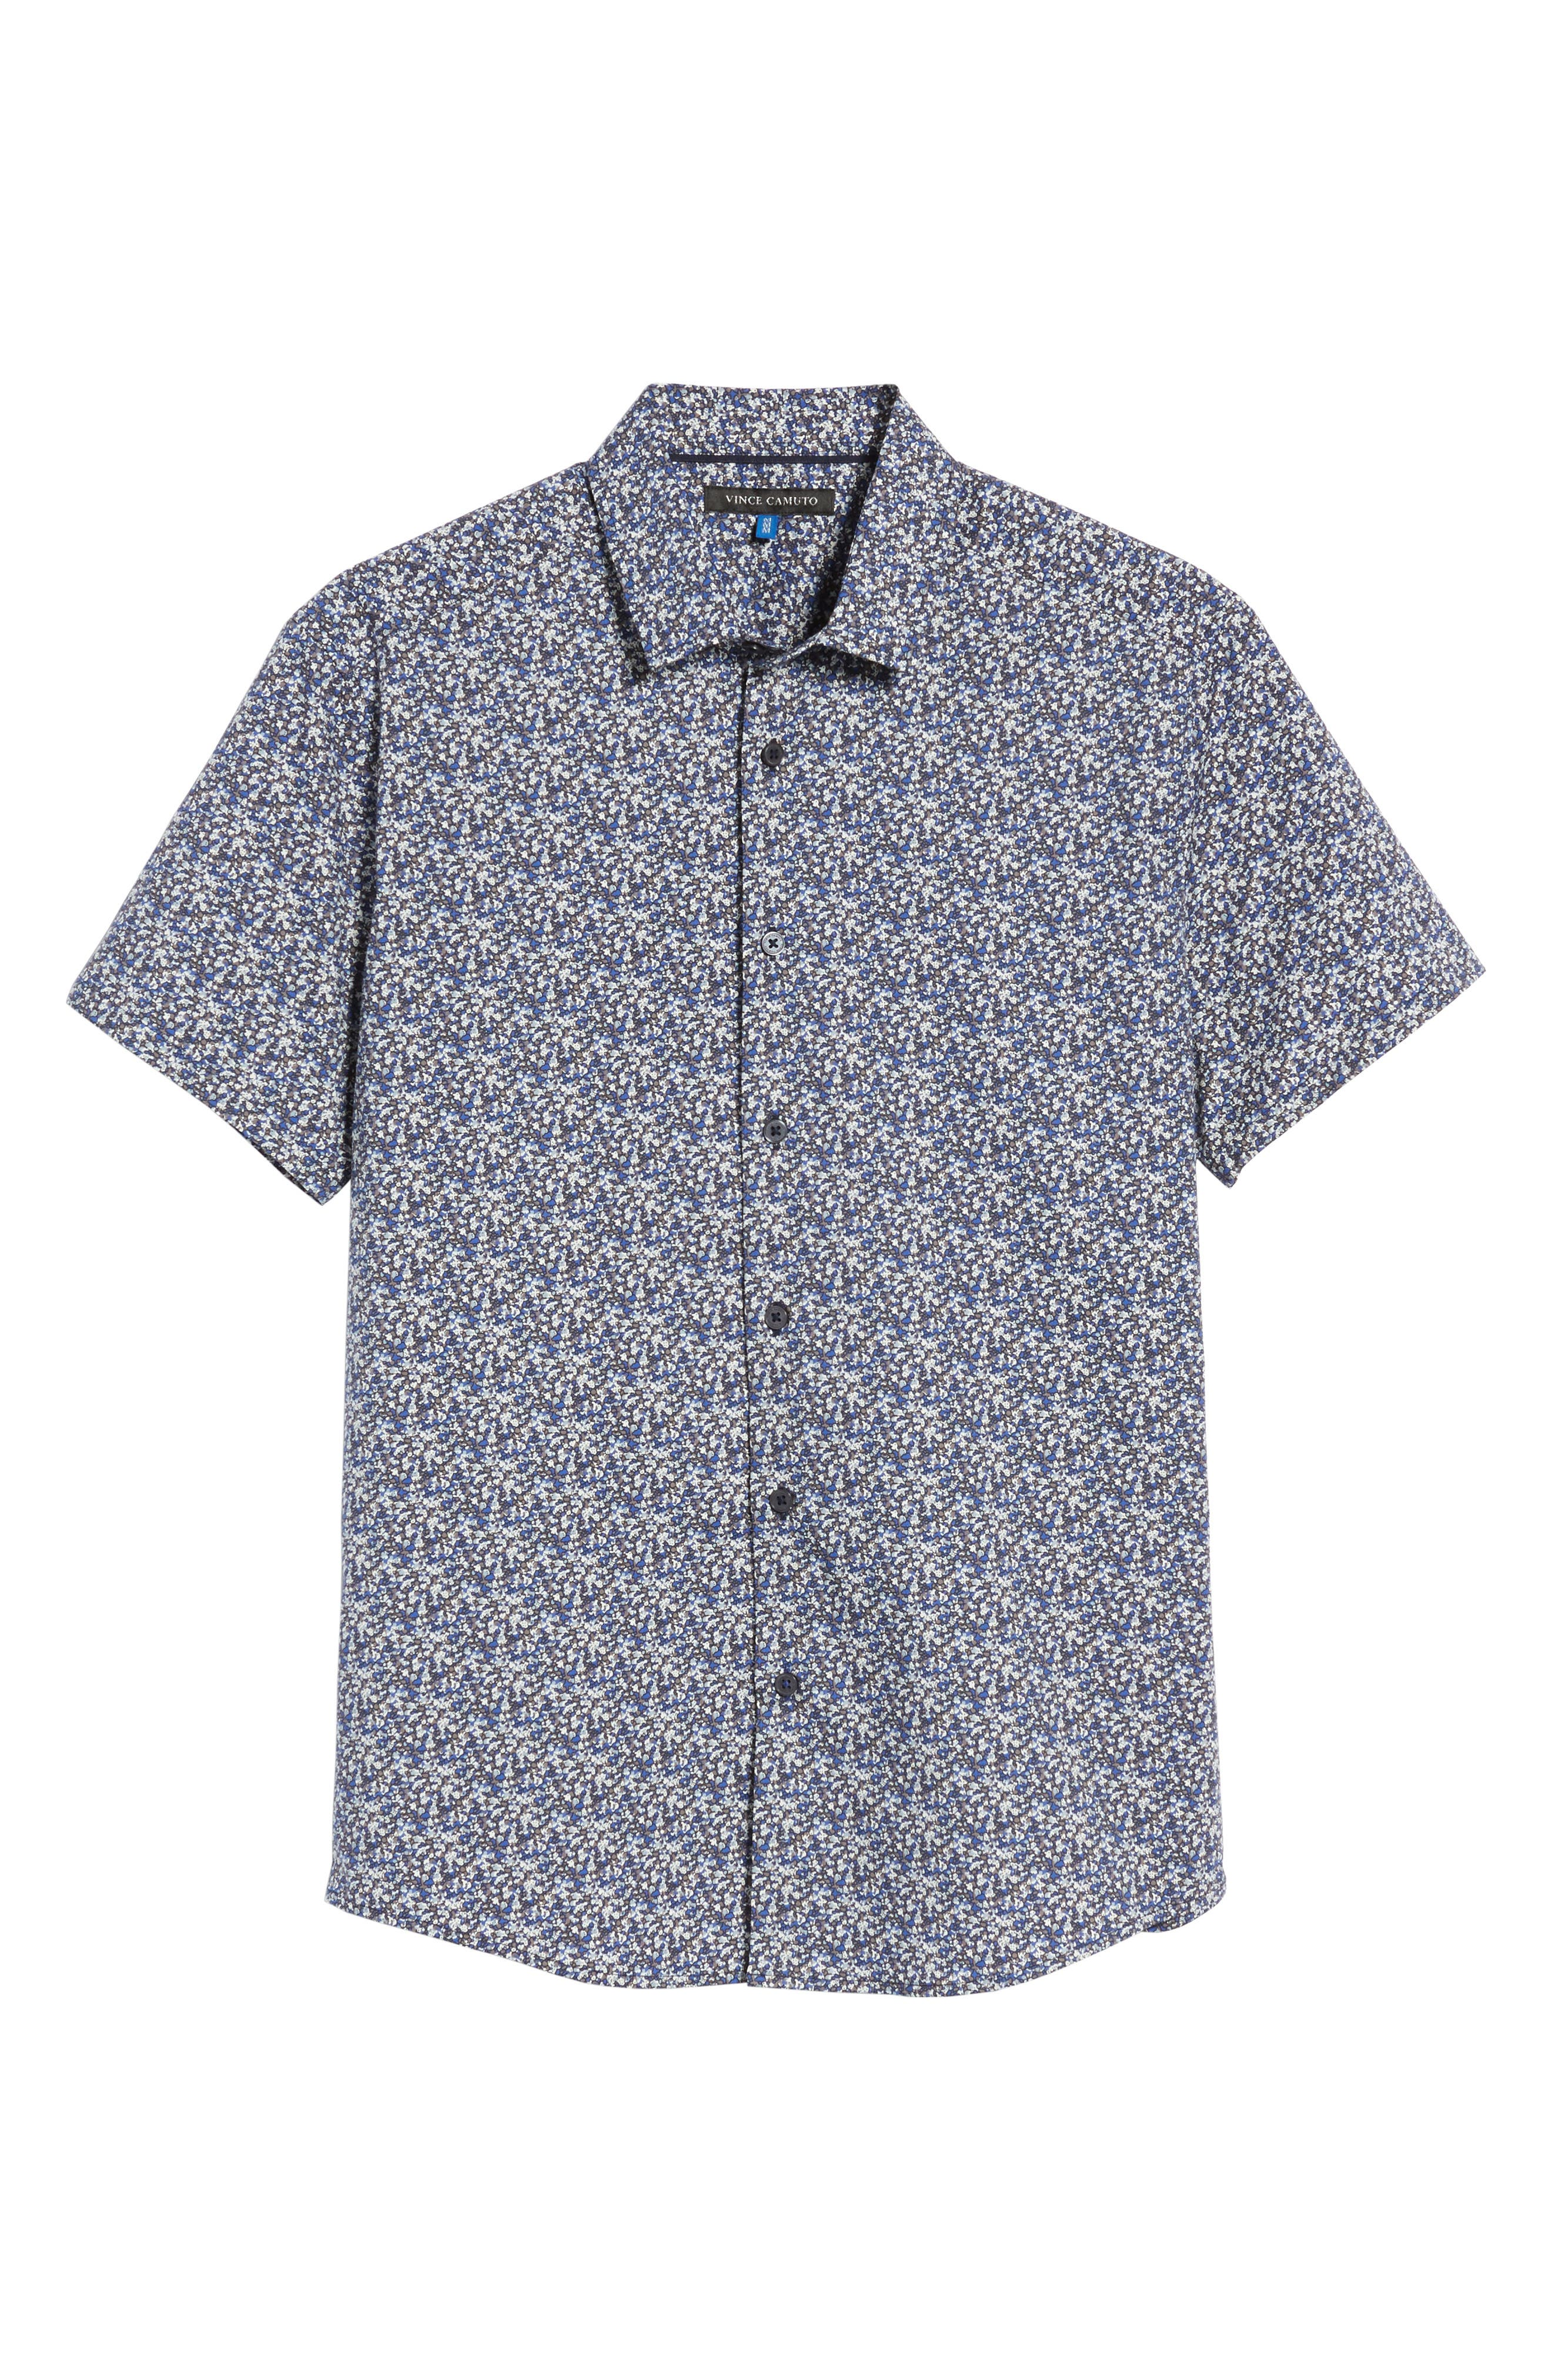 Slim Fit Print Sport Shirt,                             Alternate thumbnail 6, color,                             425